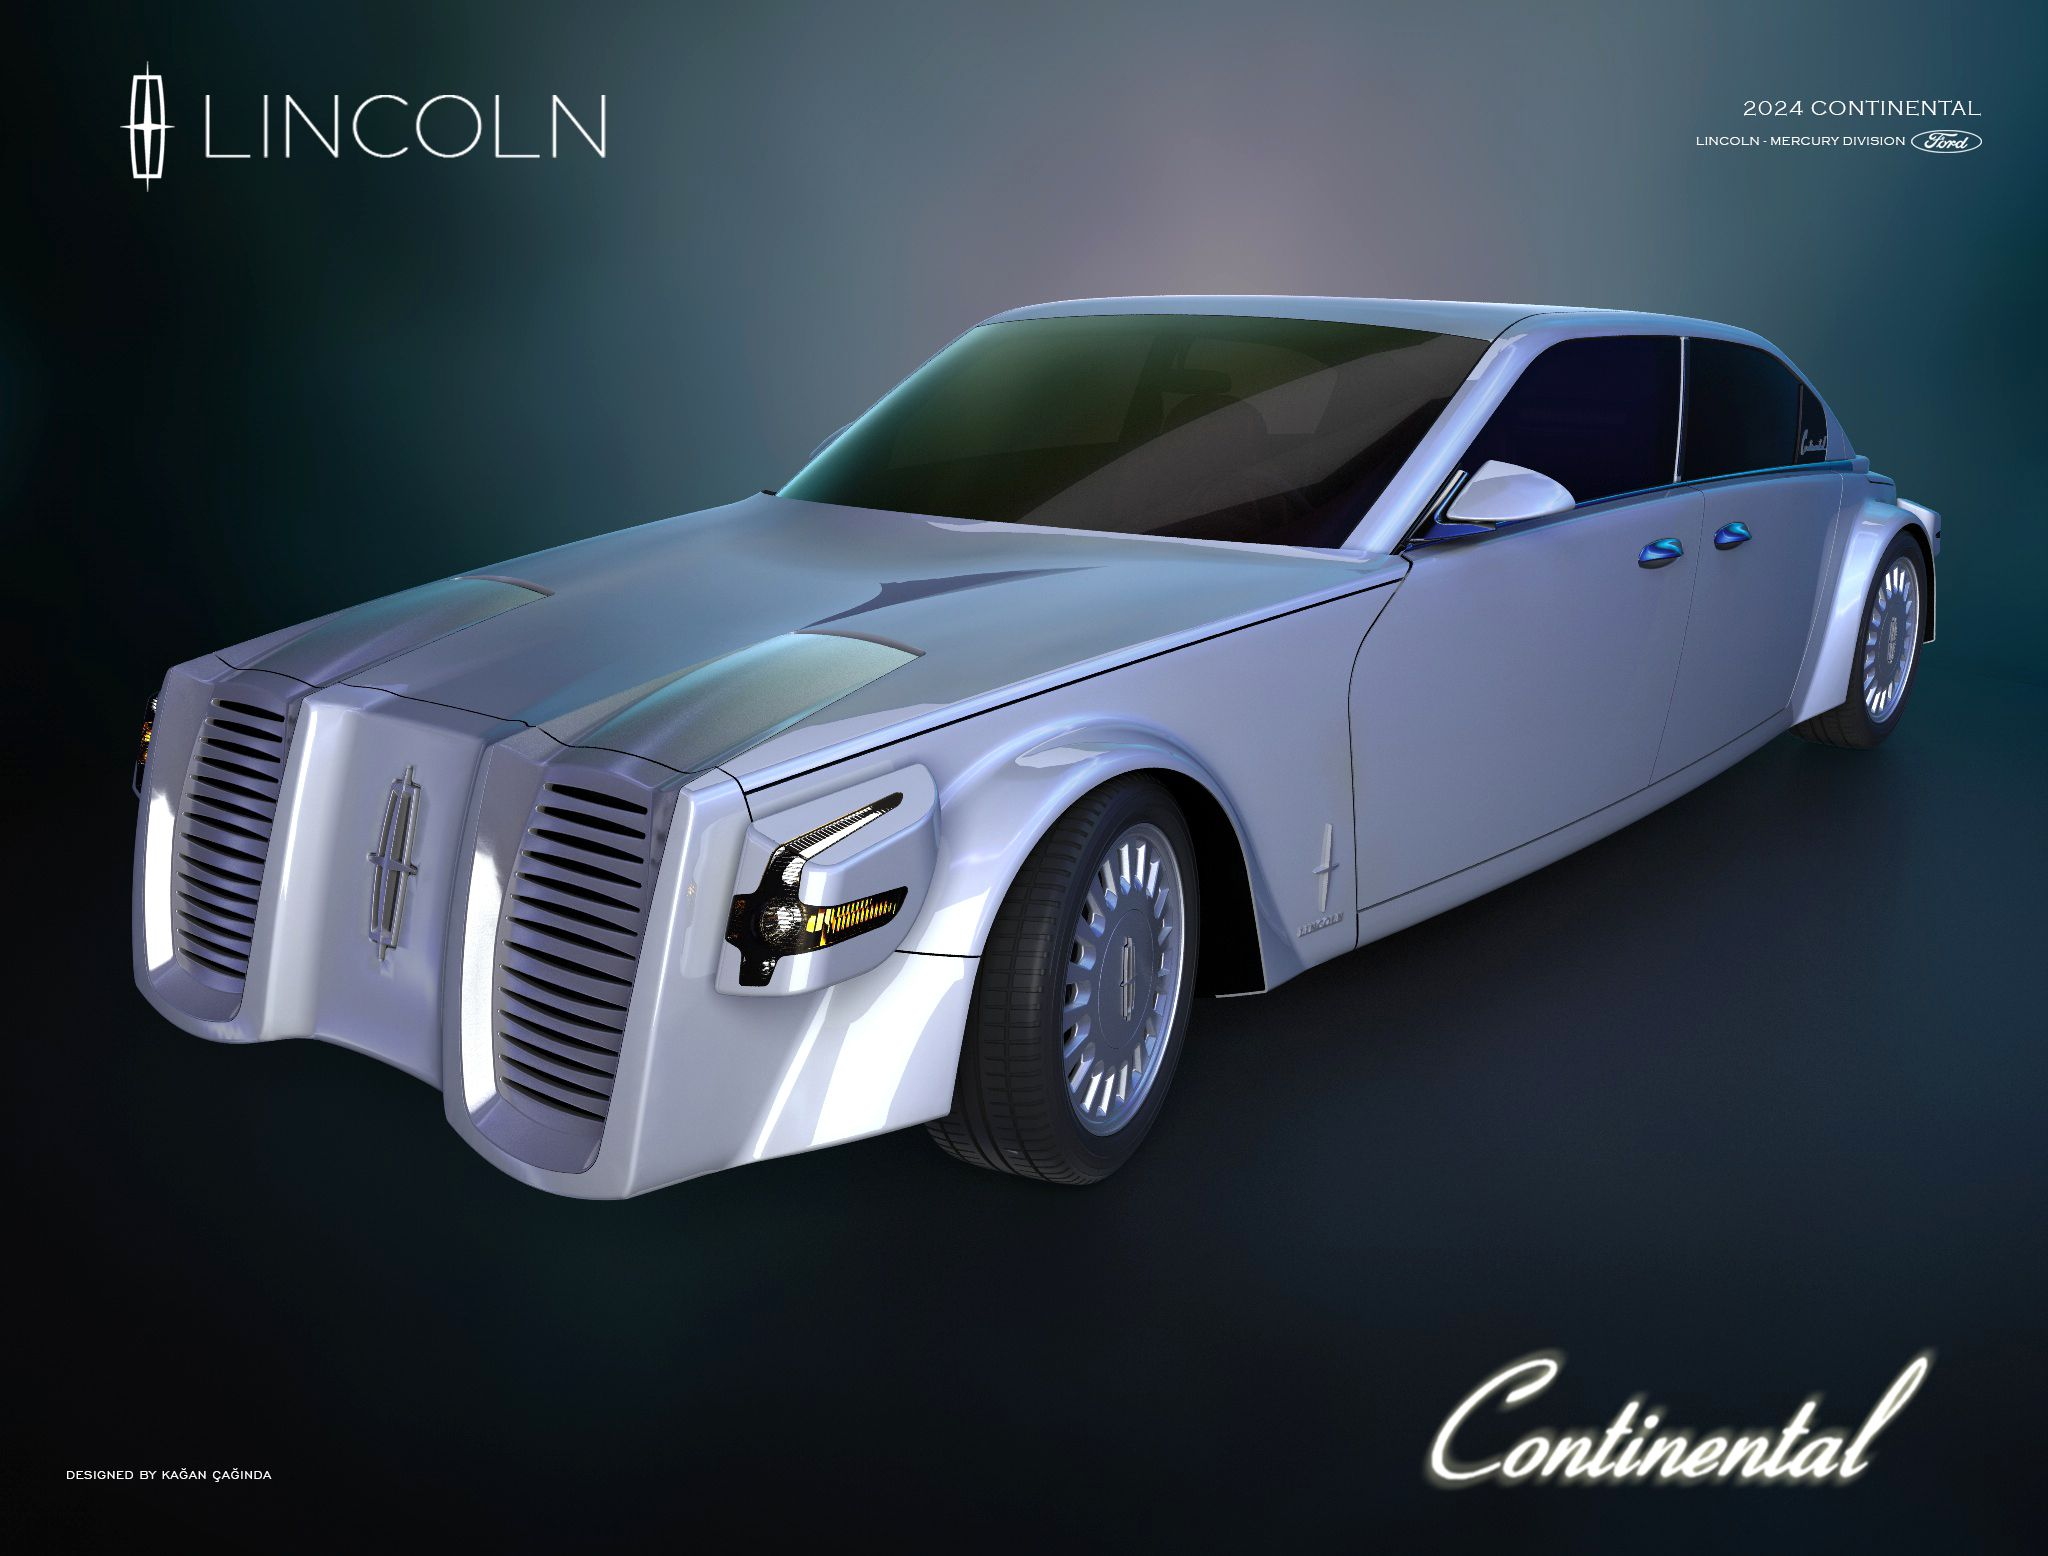 #lincolncontinental #cardesign #design #car #cardesignworld #automotivedesign #cardesigncommunity #cardesigner #transportationdesign #sketch #carsketch #cardesigndaily #cardesignsketch #cars #automotive #industrialdesign #conceptcar #concept #art #carsofinstagram #vehicledesign #supercar #sketching #drawing #photoshop #sketchbook #designer #porsche #carart #cardrawing #bhfyp #abrahamlincoln #impala #history #traditionalluxurycar #car #photography #classiccar #art #omaha #chevy #lincolnnebraska